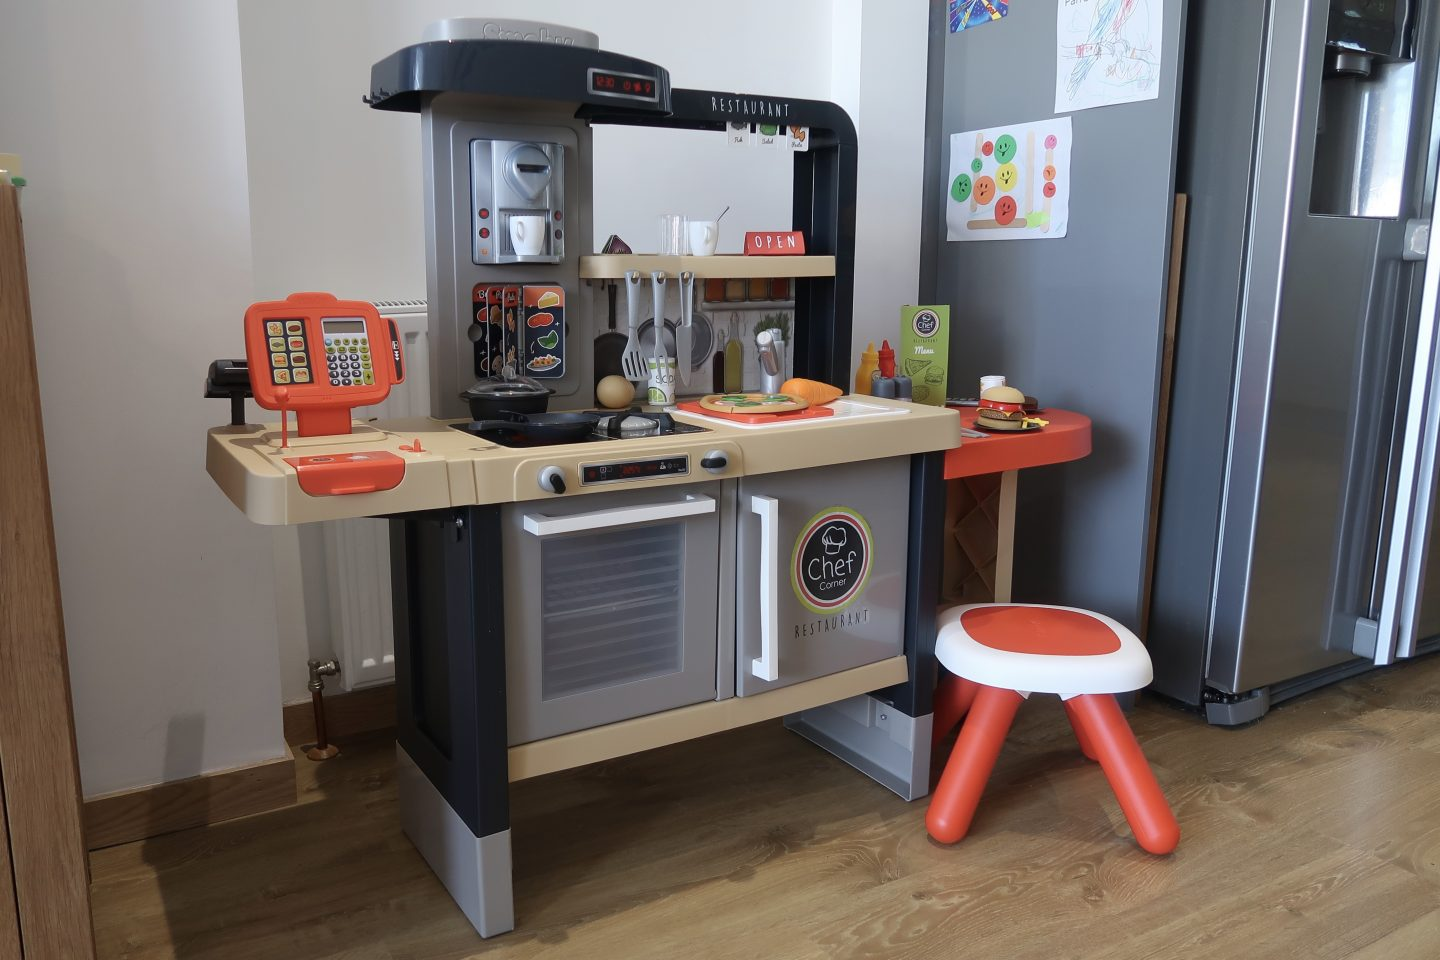 A kids toy kitchen against a wall